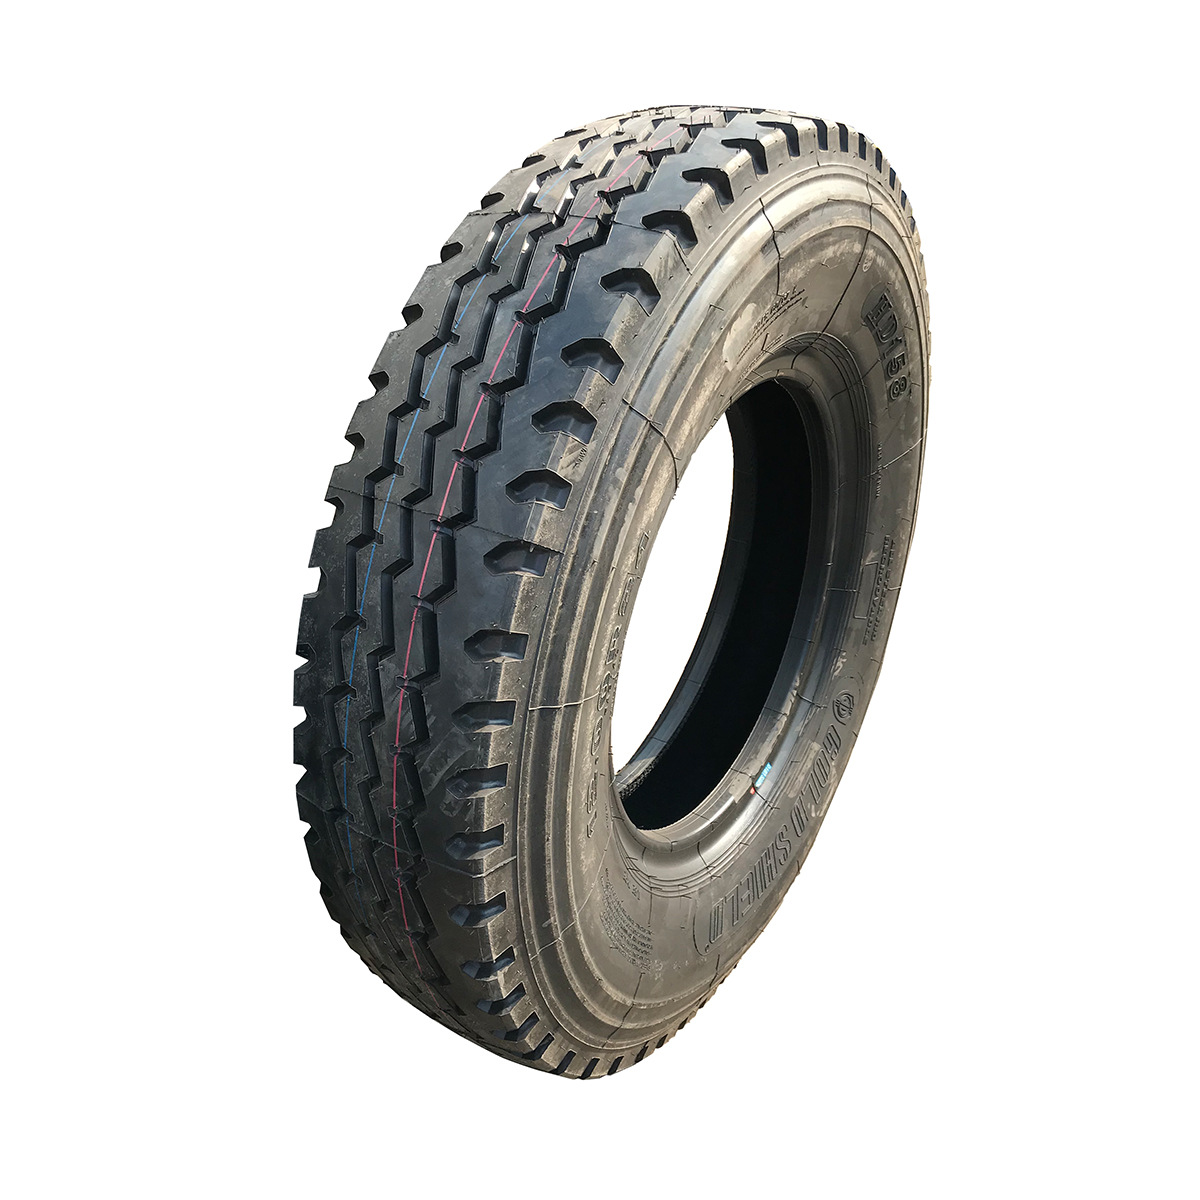 Heavy-duty truck mine special tires 1200R24 port trailer tires are not three packs of construction m